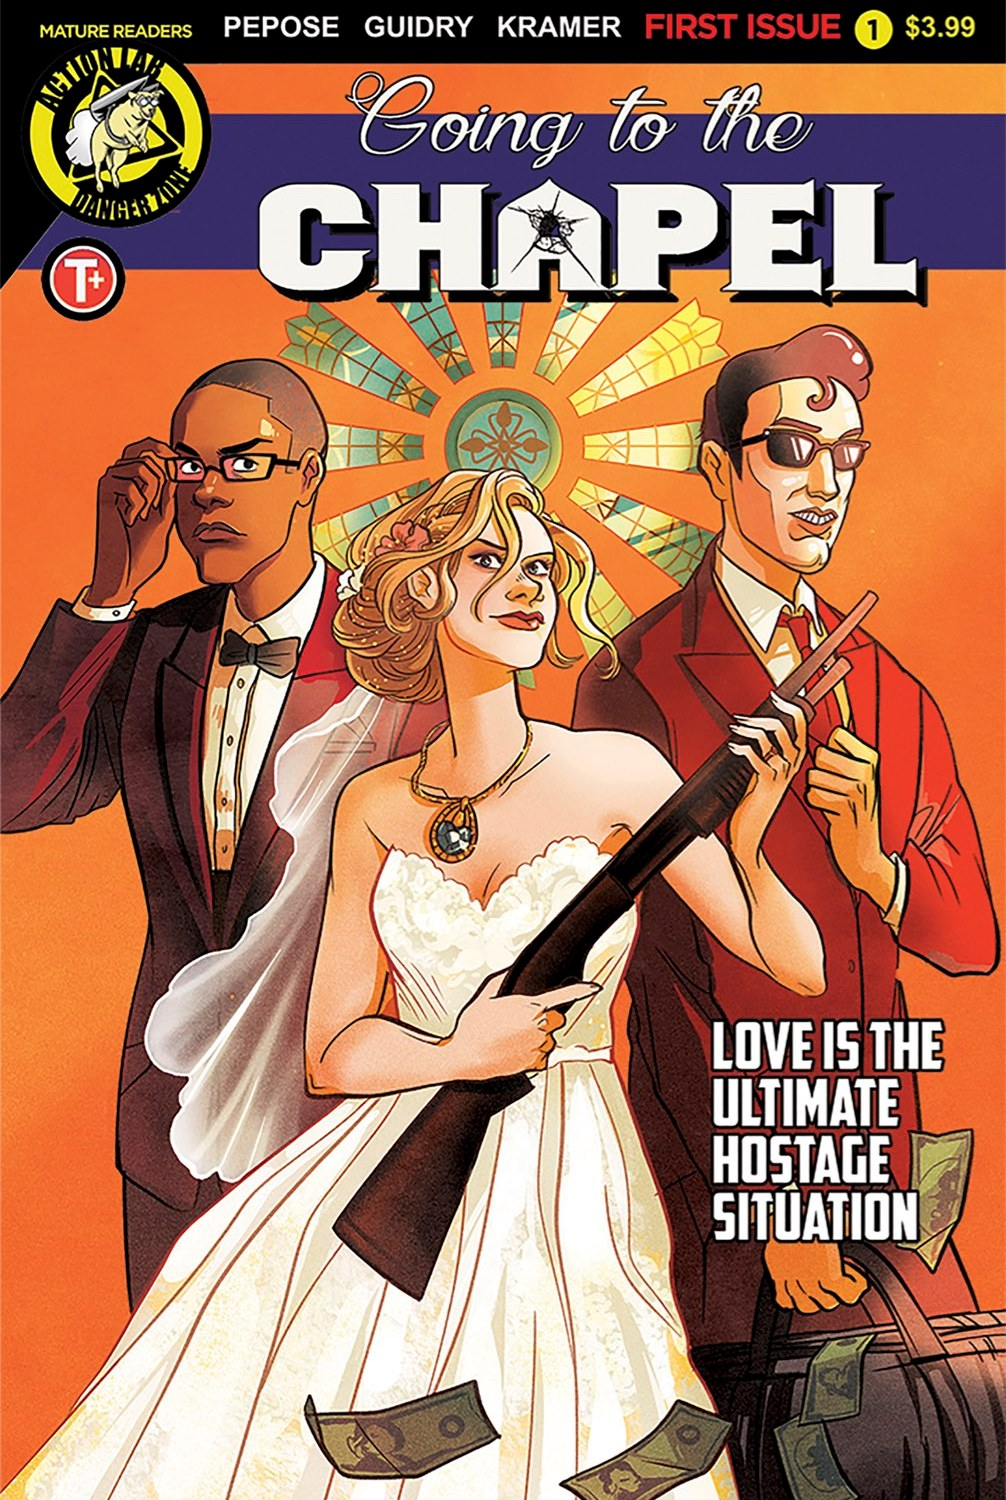 Going to the Chapel #1 Cover